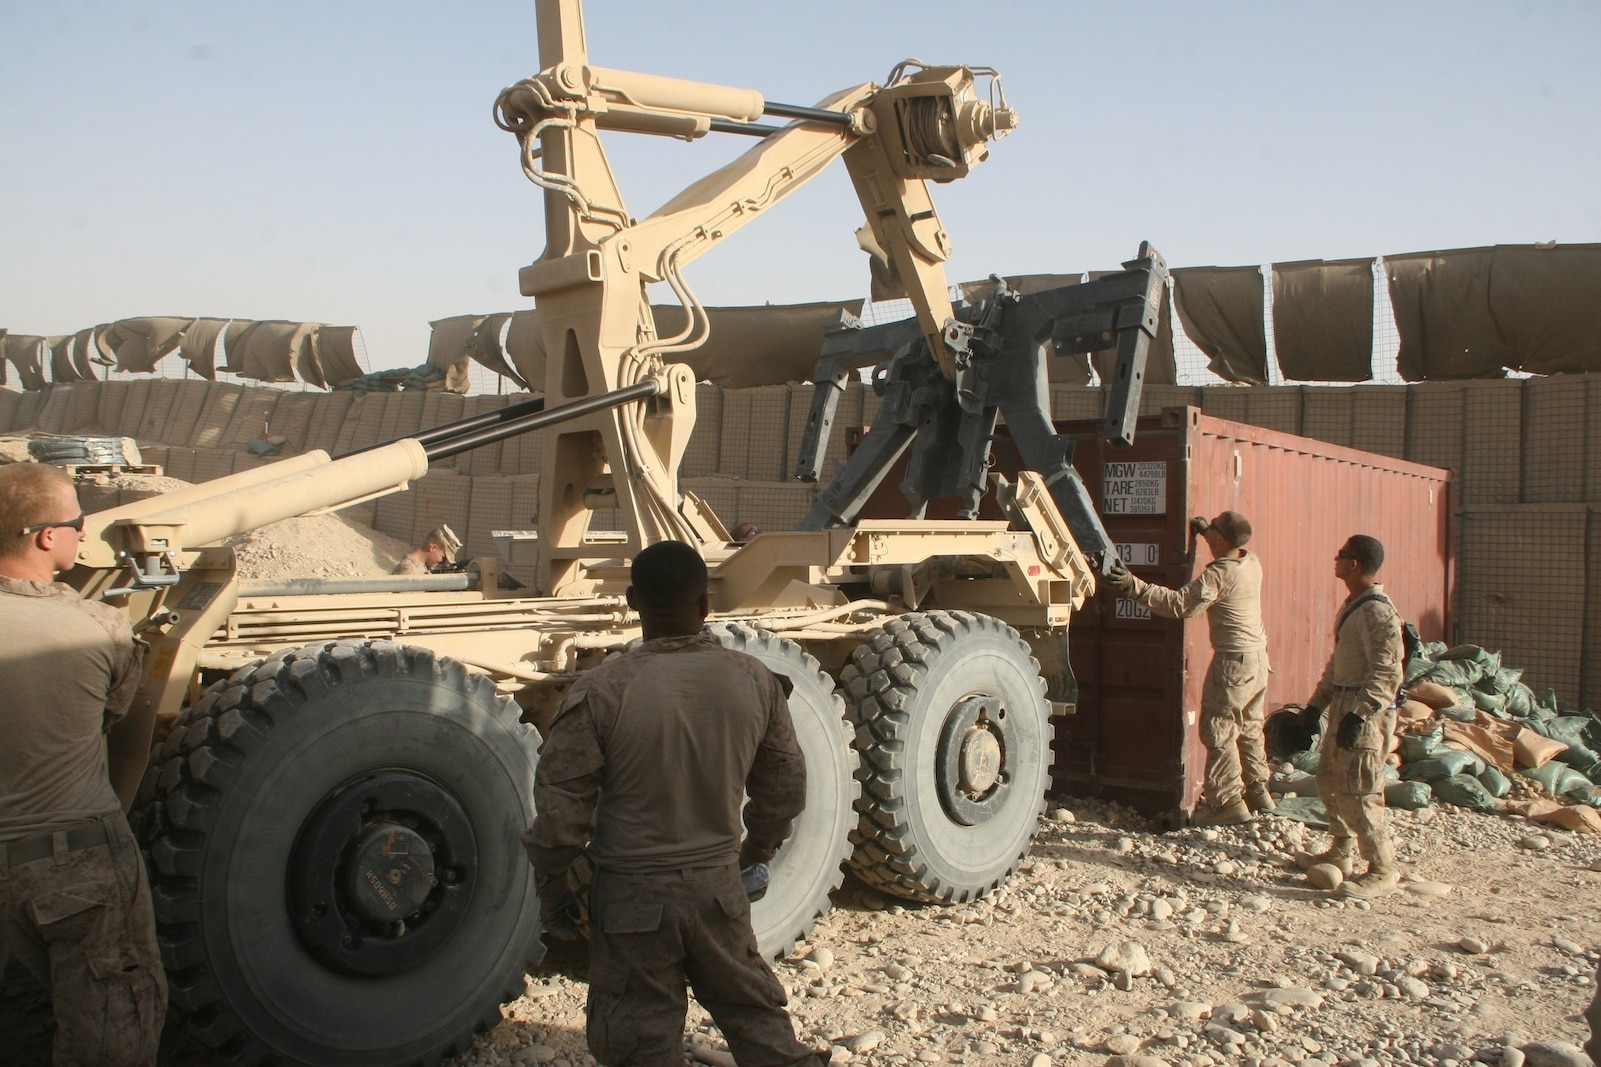 Marines with Combat Logistics Battalion 1, Regional Command (Southwest), assist a logistics vehicle system replacement operator during a retrograde operation aboard Patrol Base Boldak, Helmand province, Afghanistan, Aug. 14, 2014. The operation was designed to retrograde the majority of the excess gear and equipment such as living quarters containers and air conditioning units from PB Boldak.